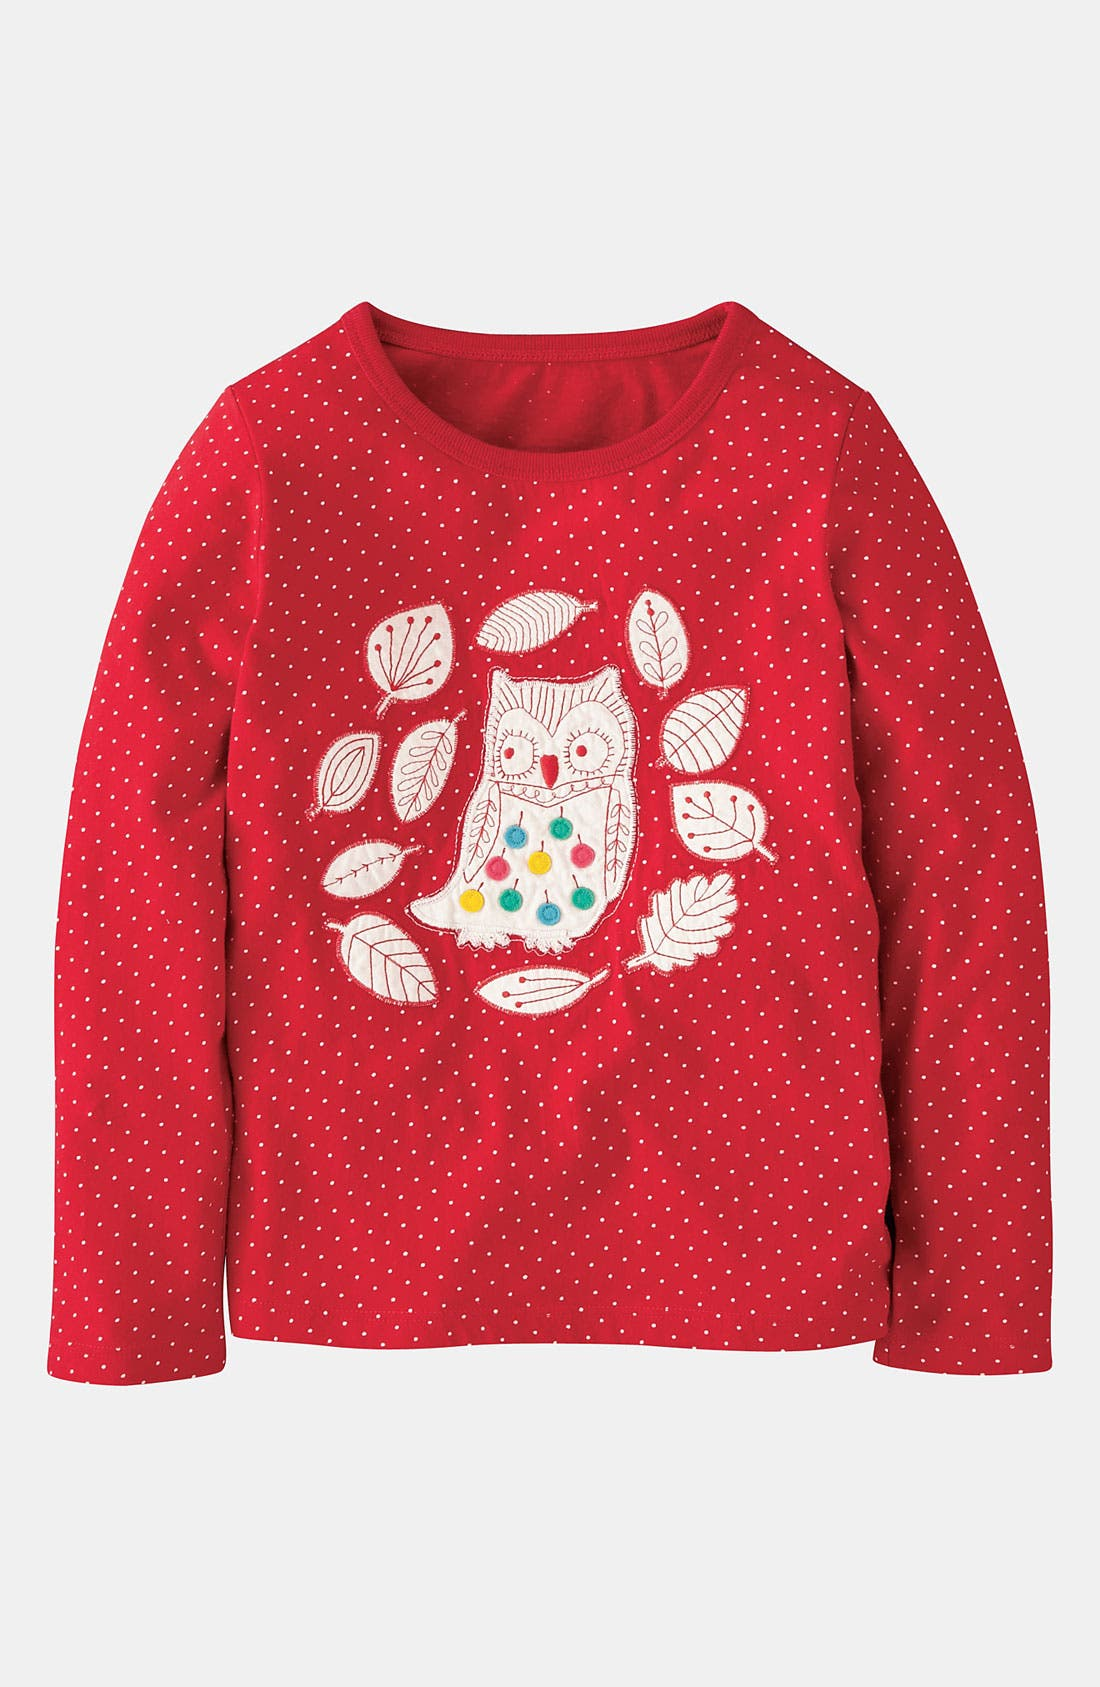 Main Image - Mini Boden 'Nordic Appliqué' Tee (Toddler, Little Girls & Big Girls)